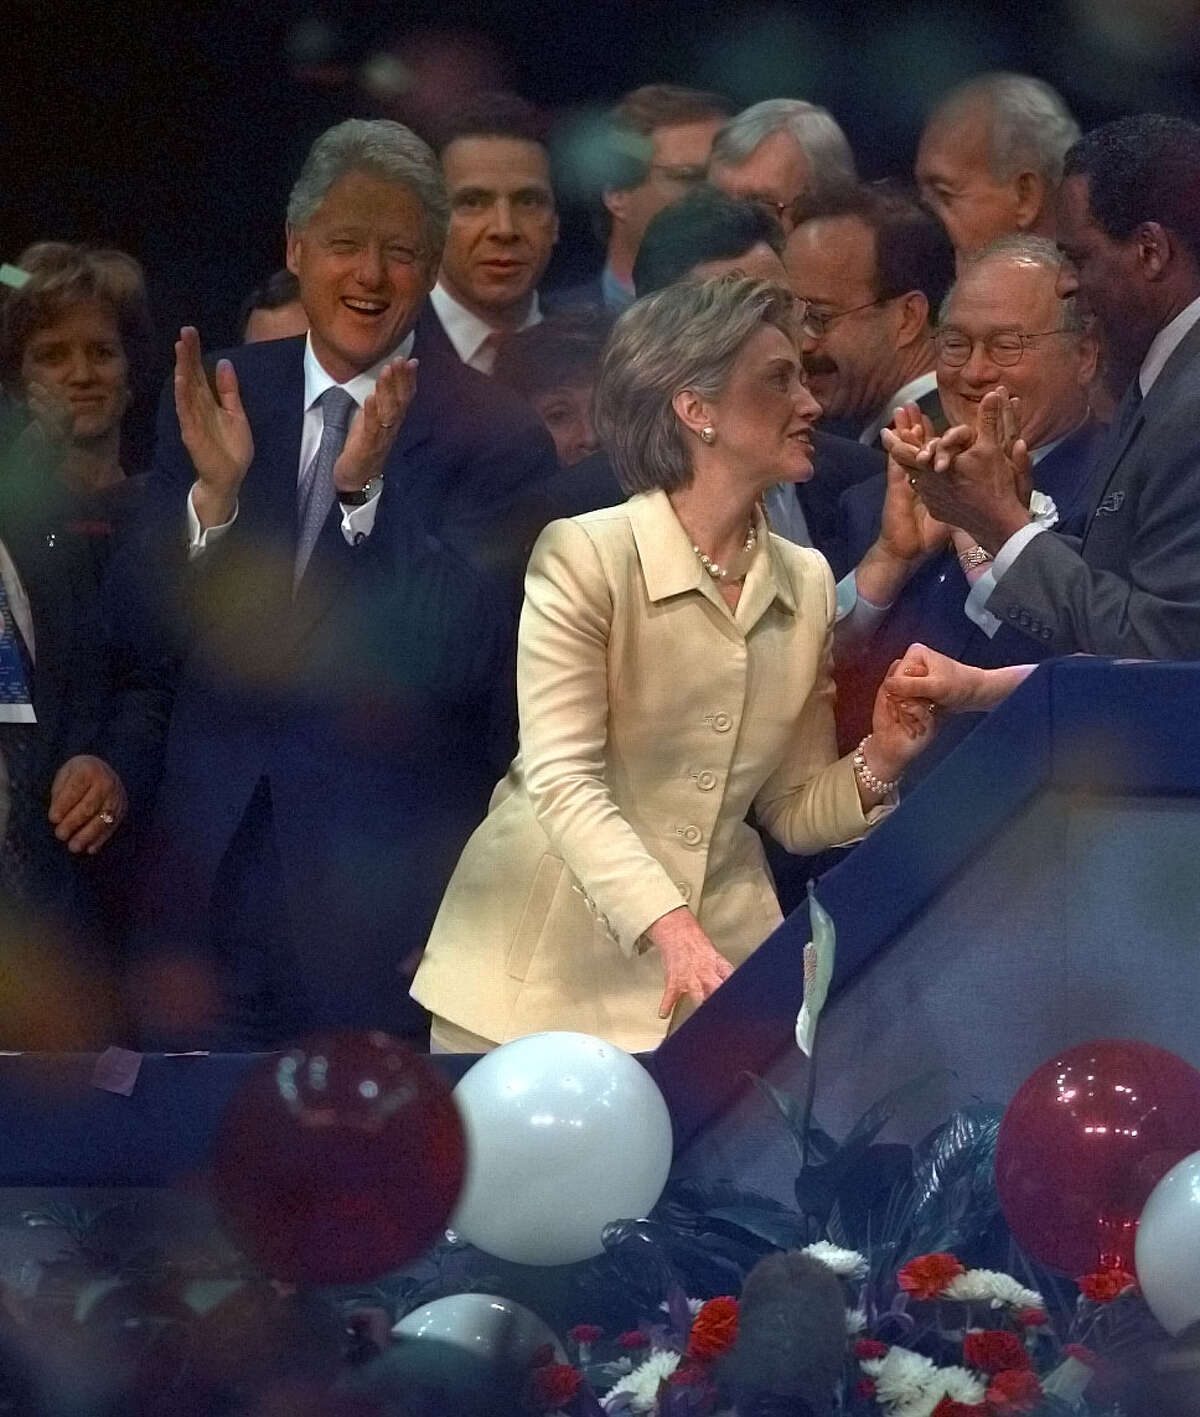 Hillary Clinton celebrates her nomination as Democratic candidate for the US Senate at the state Democratic convention at the Pepsi Arena in Albany Tuesday May 16, 2000. At left is her husband, President Bill Clinton. (Philip Kamrass/Times Union)